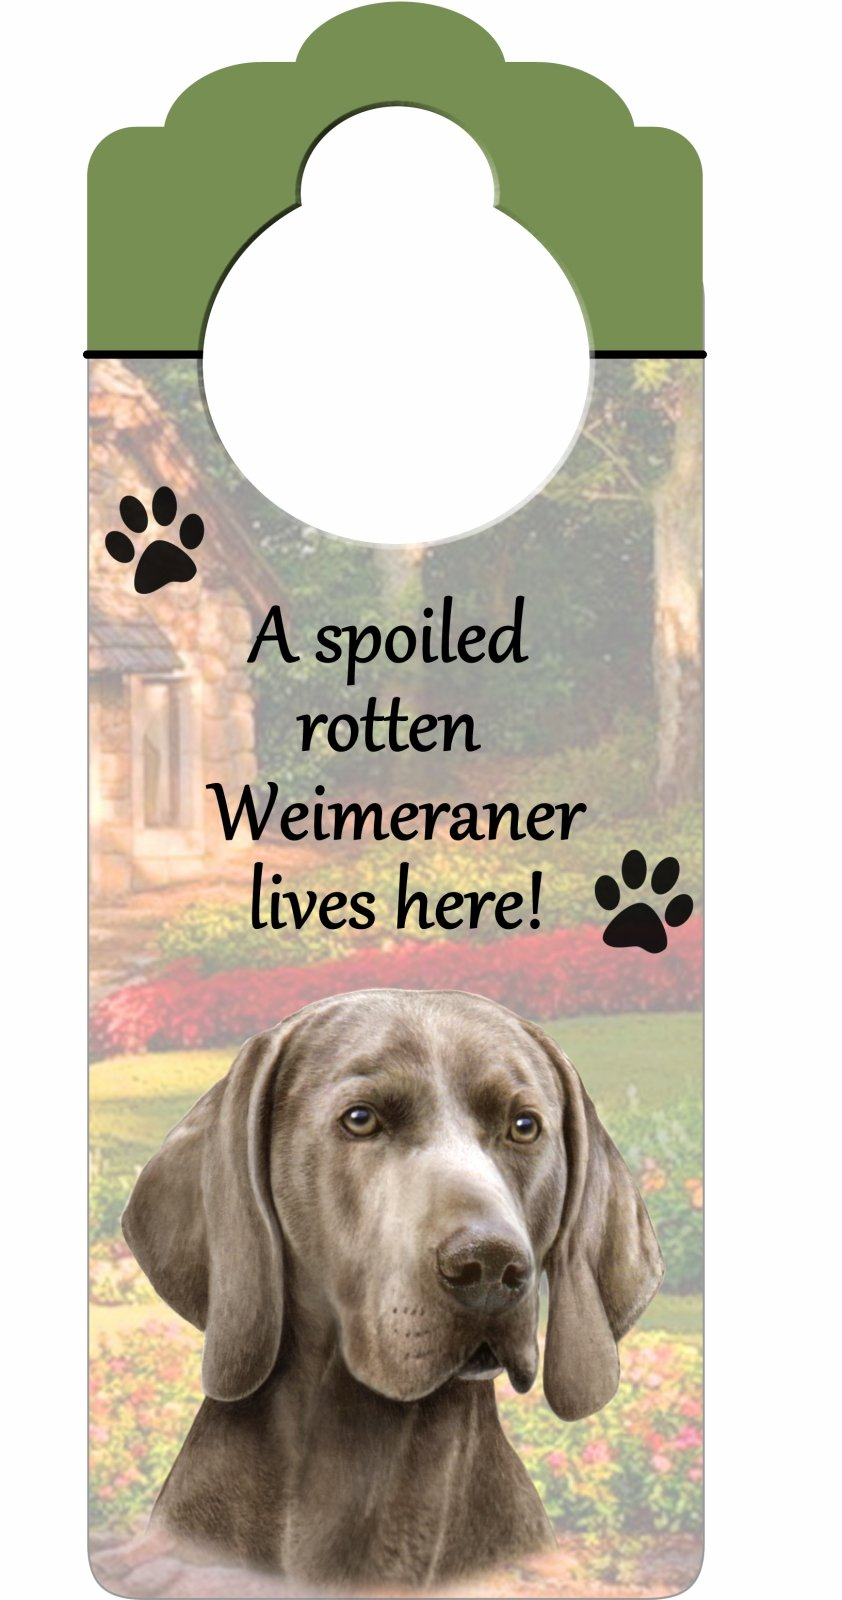 Weimeraner Wood Sign ''A Spoiled Rotten Weimeraner Lives Here''with Artistic Photograph Measuring 10 by 4 Inches Can Be Hung On Doorknobs Or Anywhere In Home